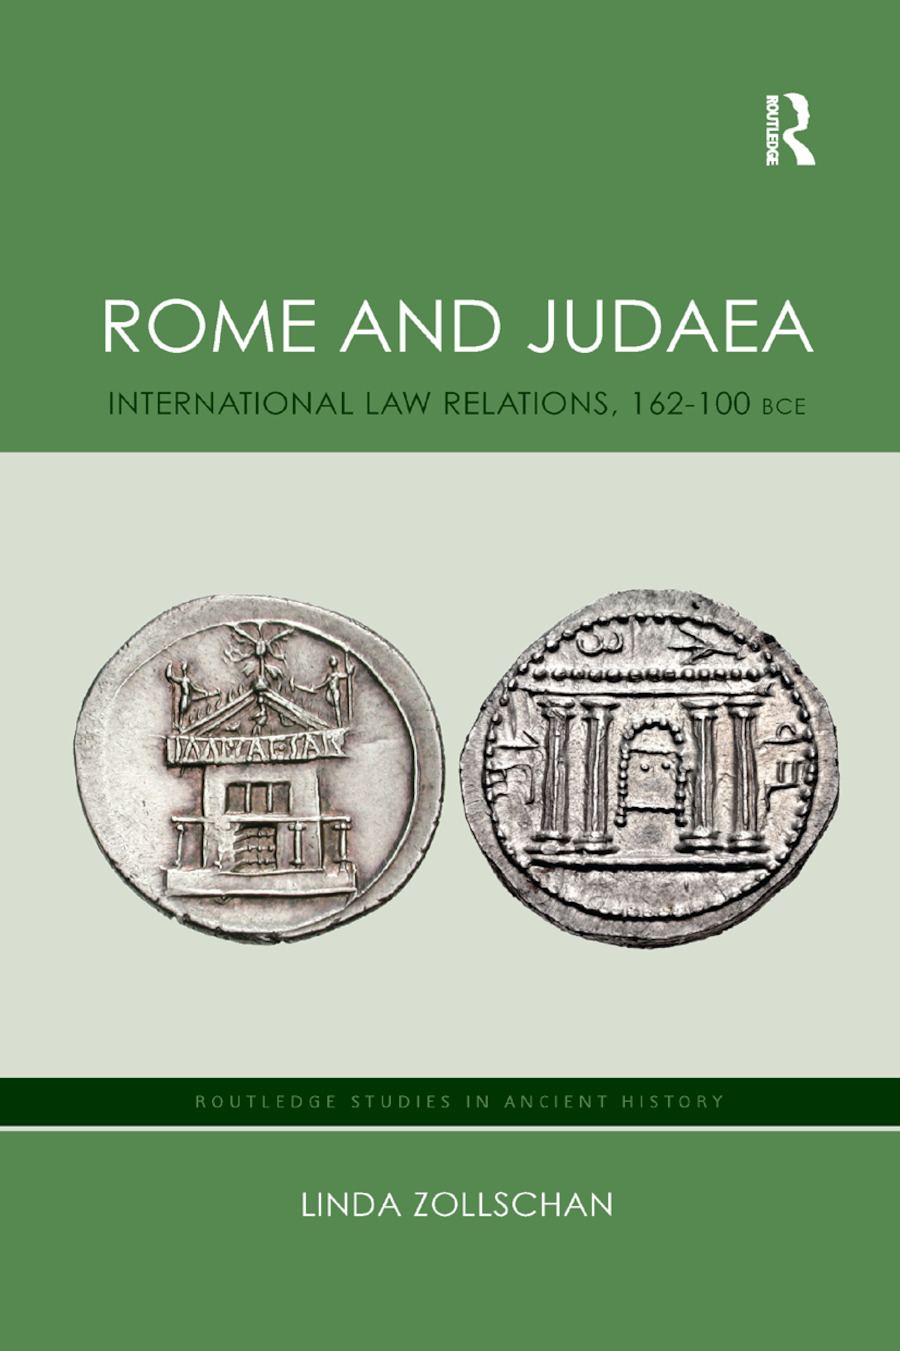 Rome and Judaea: International Law Relations, 162-100 BCE book cover